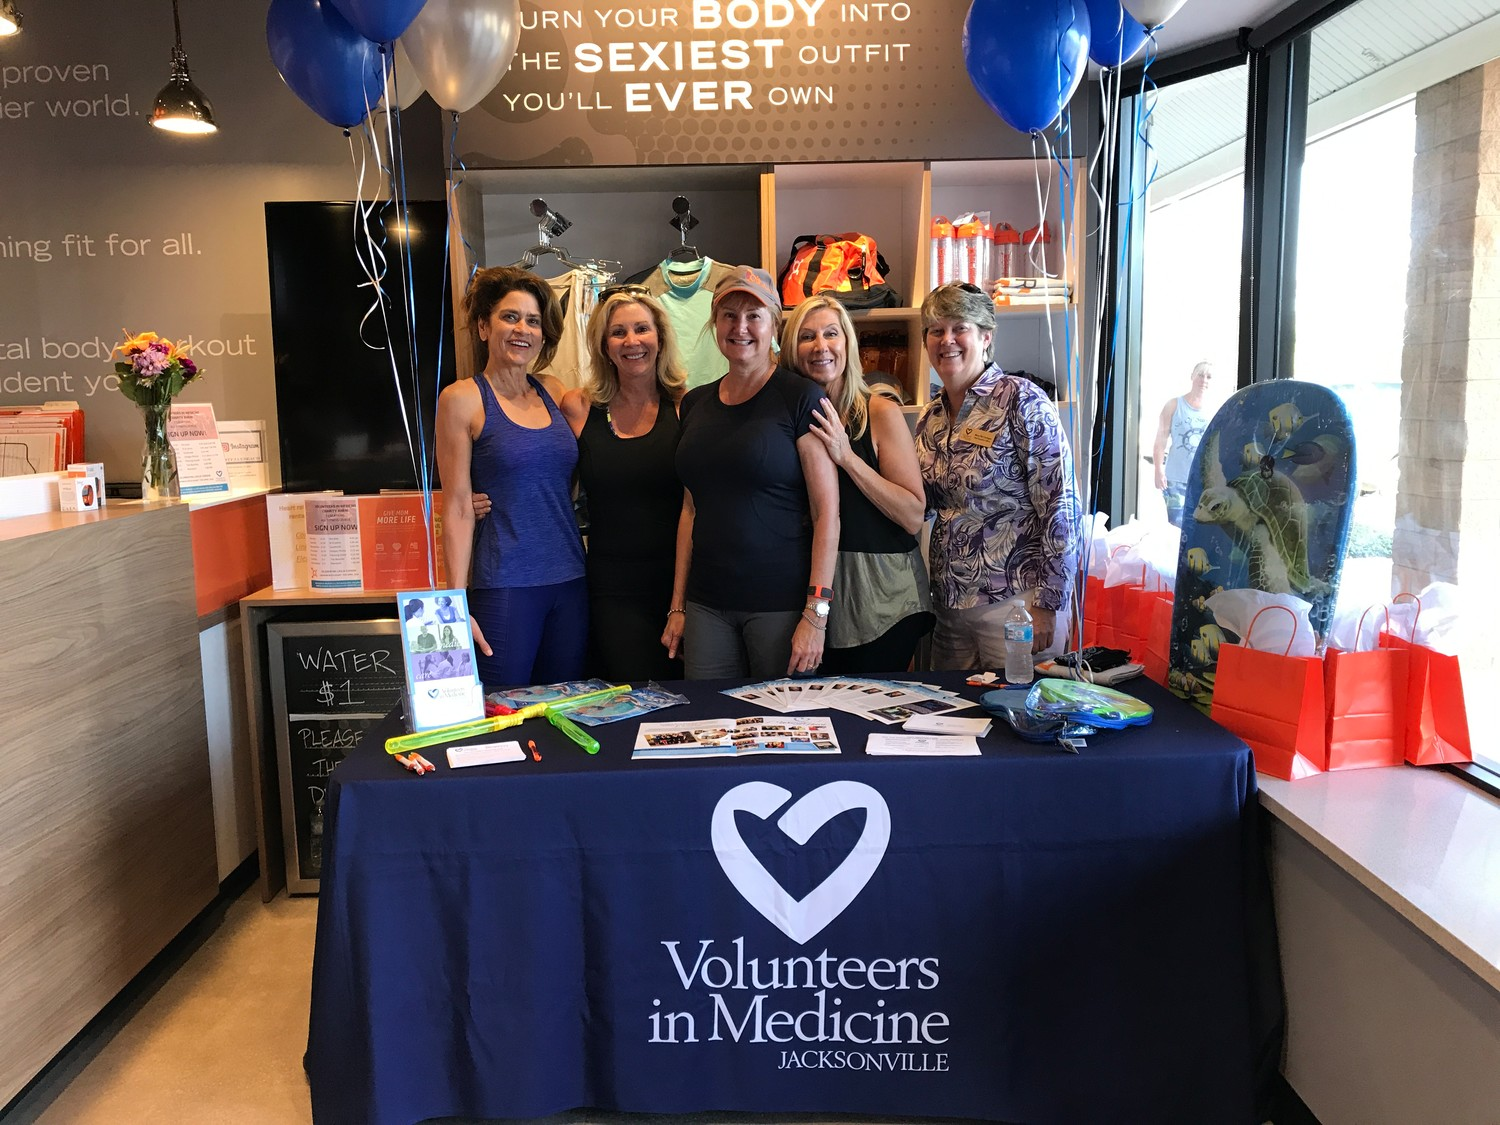 2017 Women With Heart honoree Aimee Boggs (from left); 2018 honorees Shelley Morgan, Leslie Gordon and Dany Atkinson; and Volunteers in Medicine CEO Mary Pat Corrigan attend one of the Orangetheory Fitness Charity Burn events.